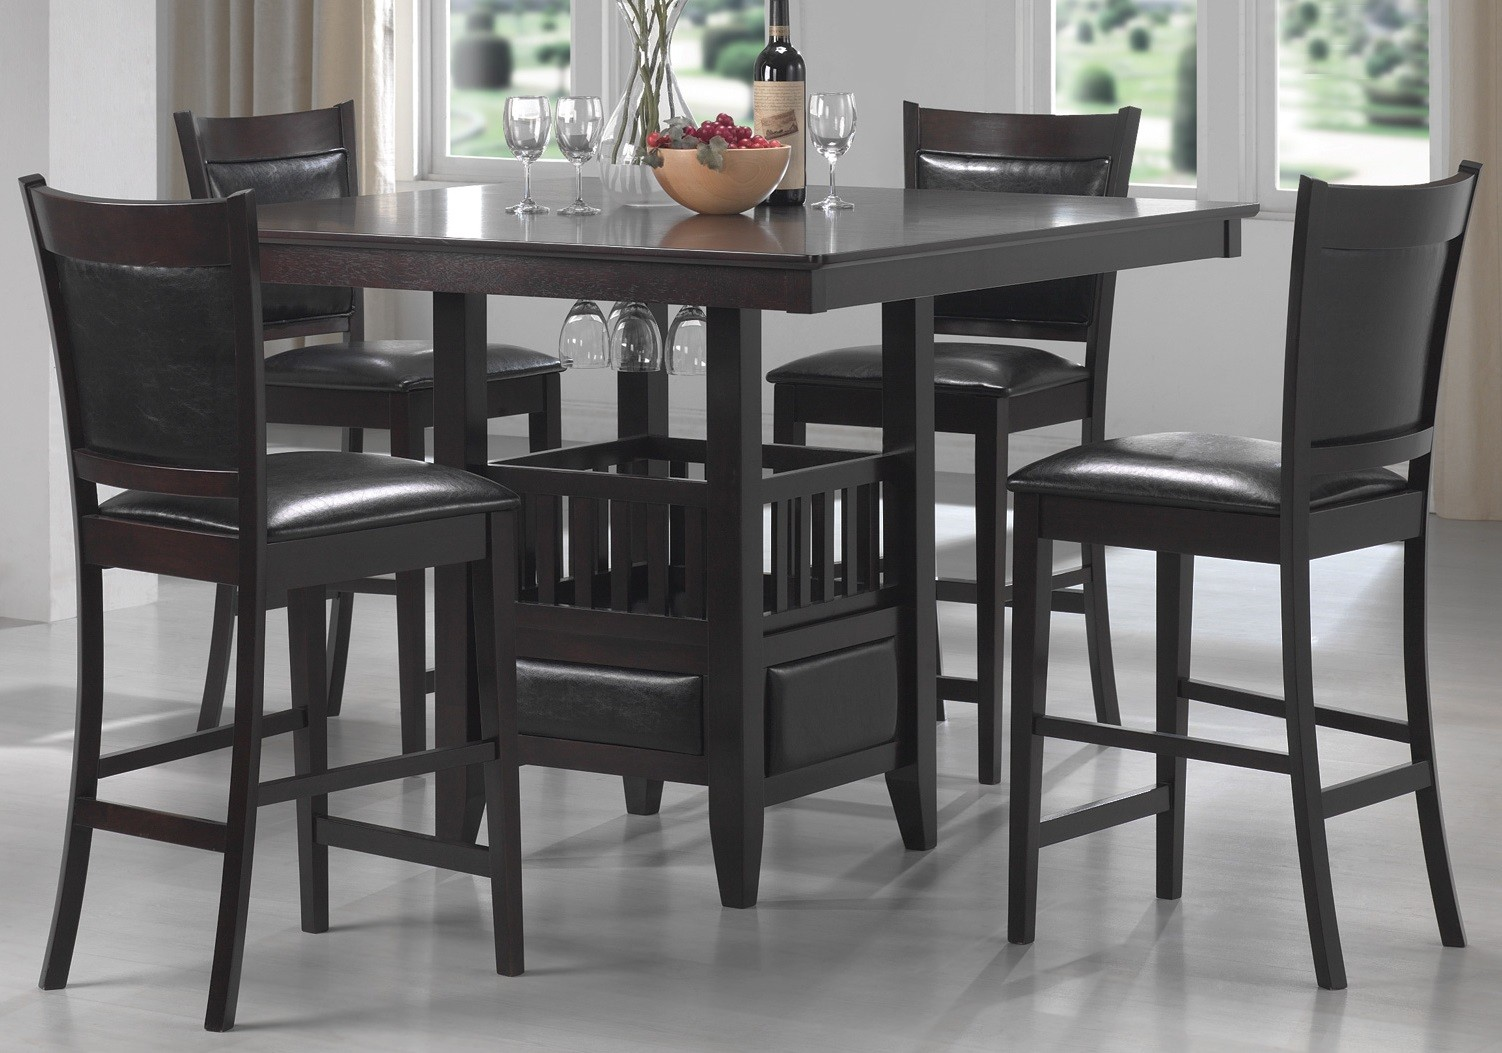 counter height dining room sets jaden counter height dining room set from coaster coleman furniture 104